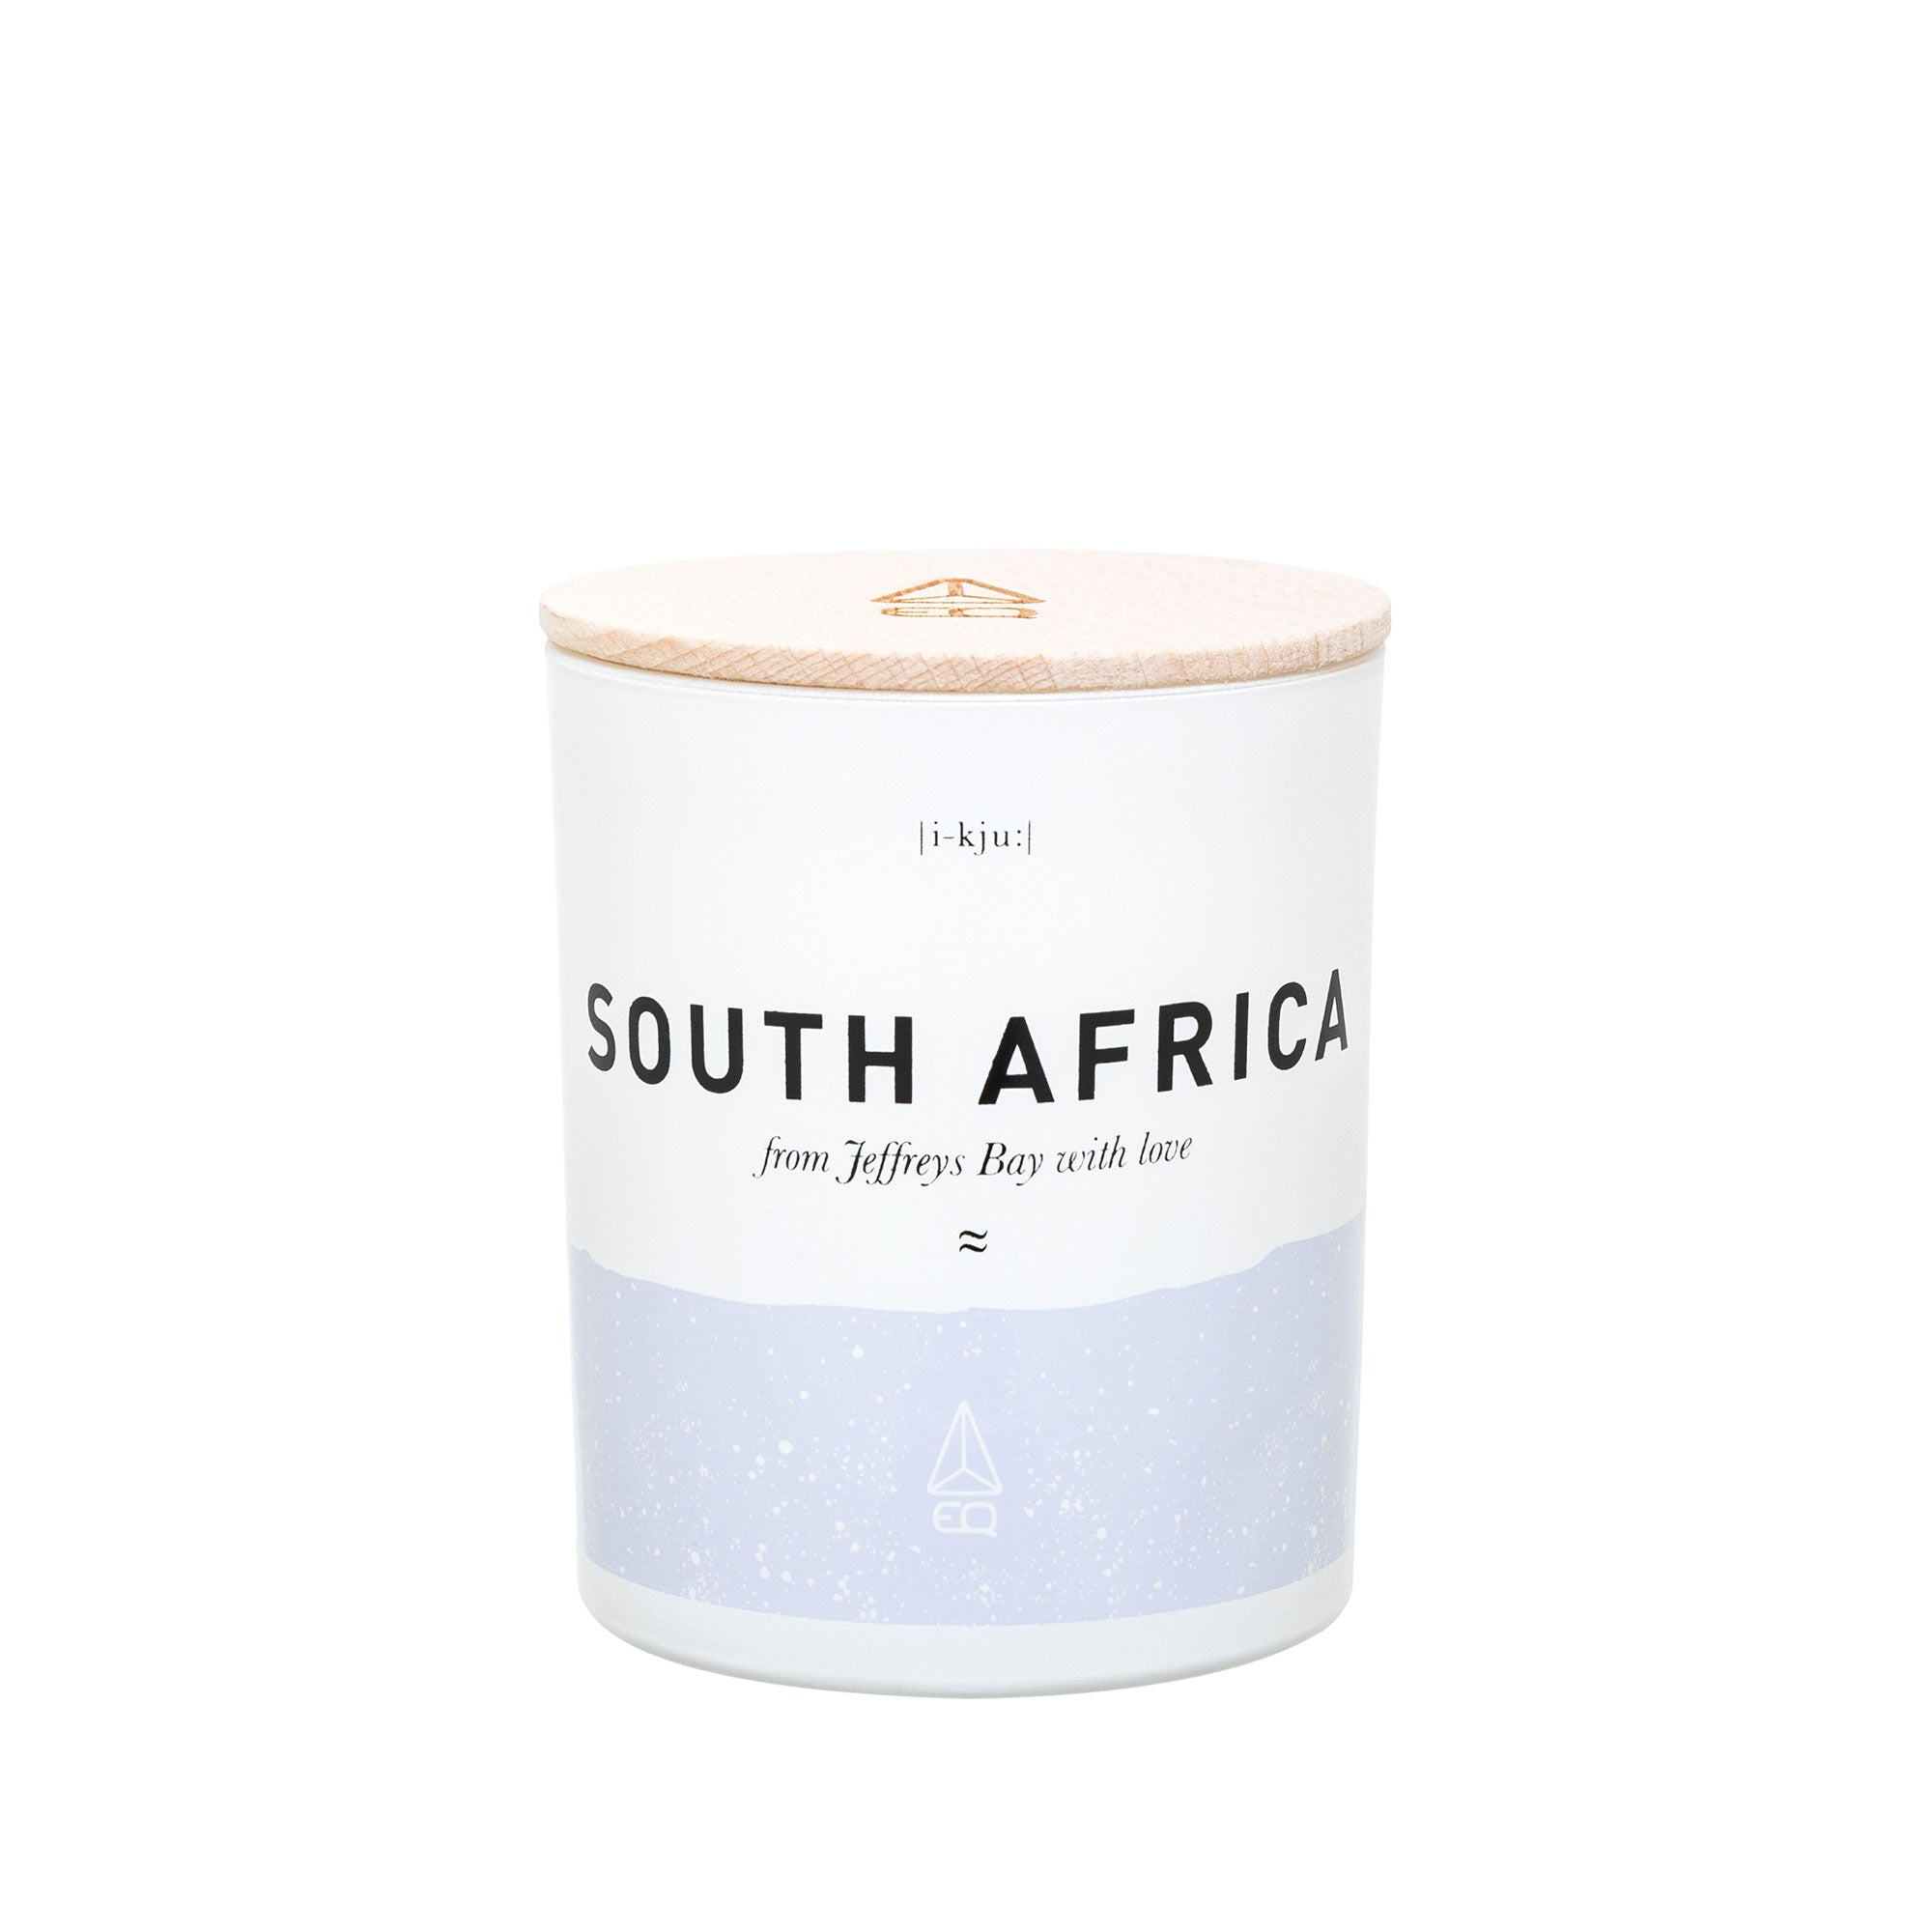 EQ Scented Candle - South Africa image 3